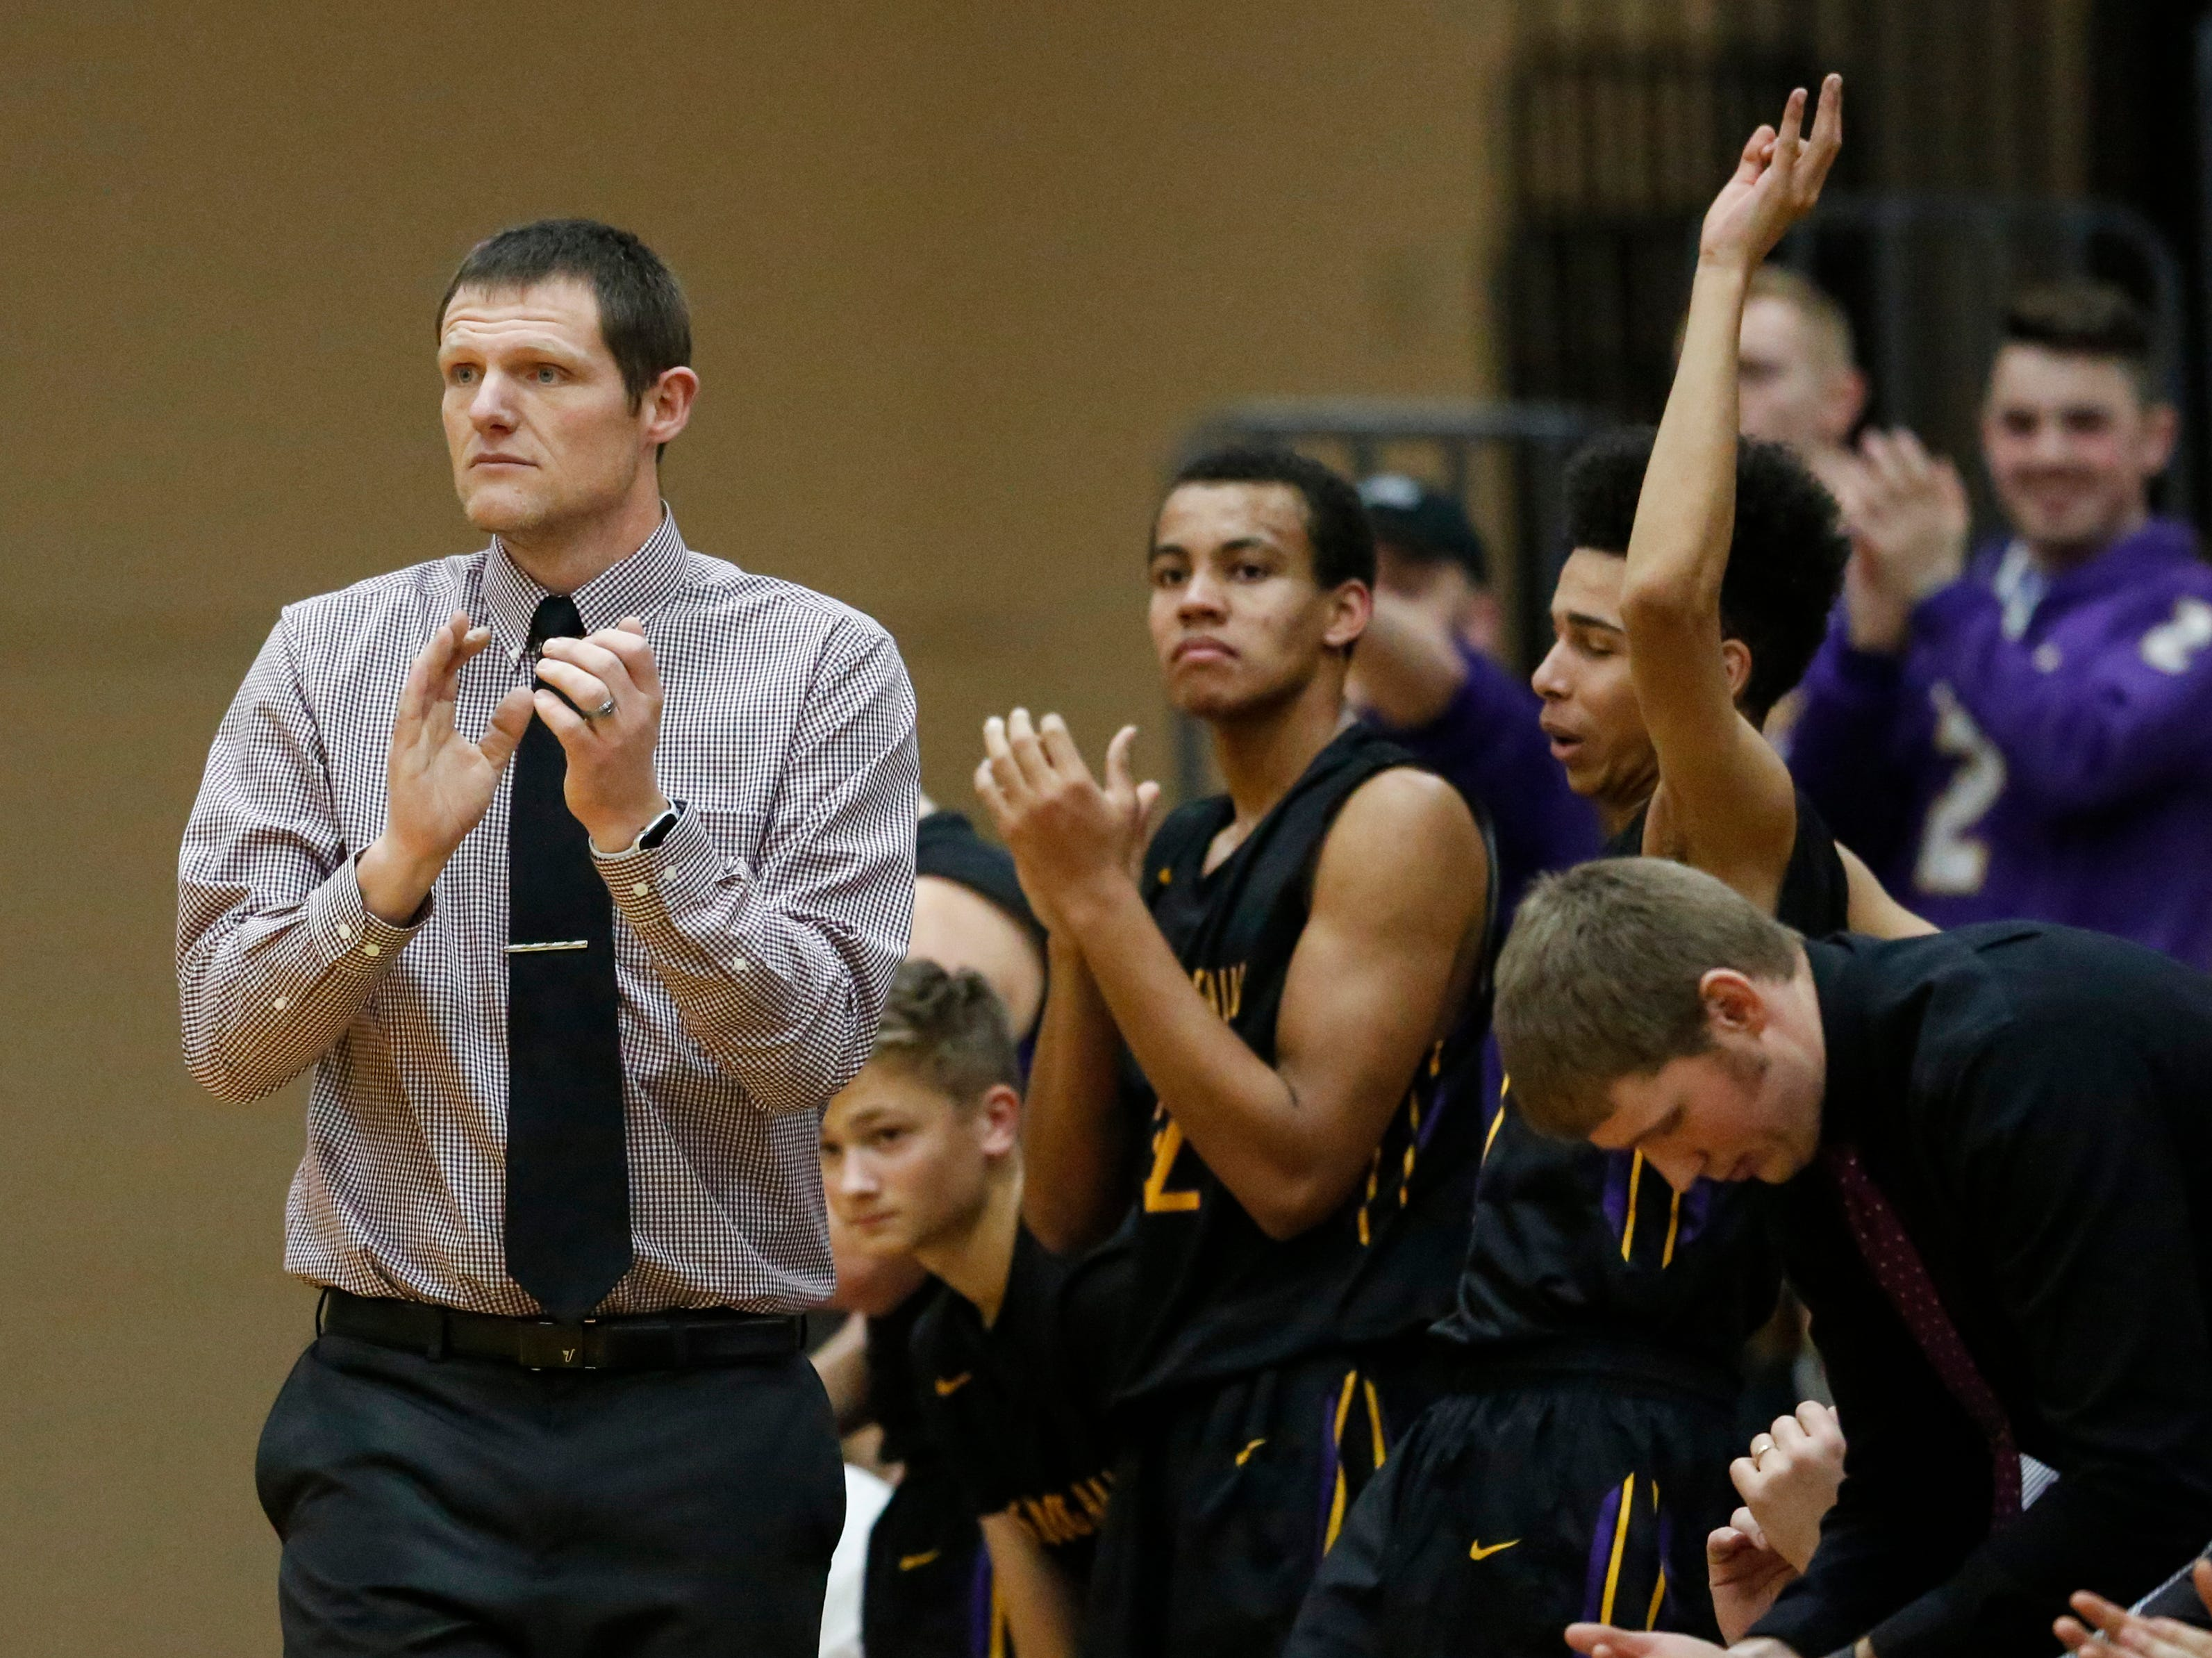 Sheboygan Falls' head coach Jake Frohling claps after they score against Two Rivers during an Eastern Wisconsin Conference game at Two Rivers High School Tuesday, December 4, 2018, in Two Rivers, Wis. Joshua Clark/USA TODAY NETWORK-Wisconsin